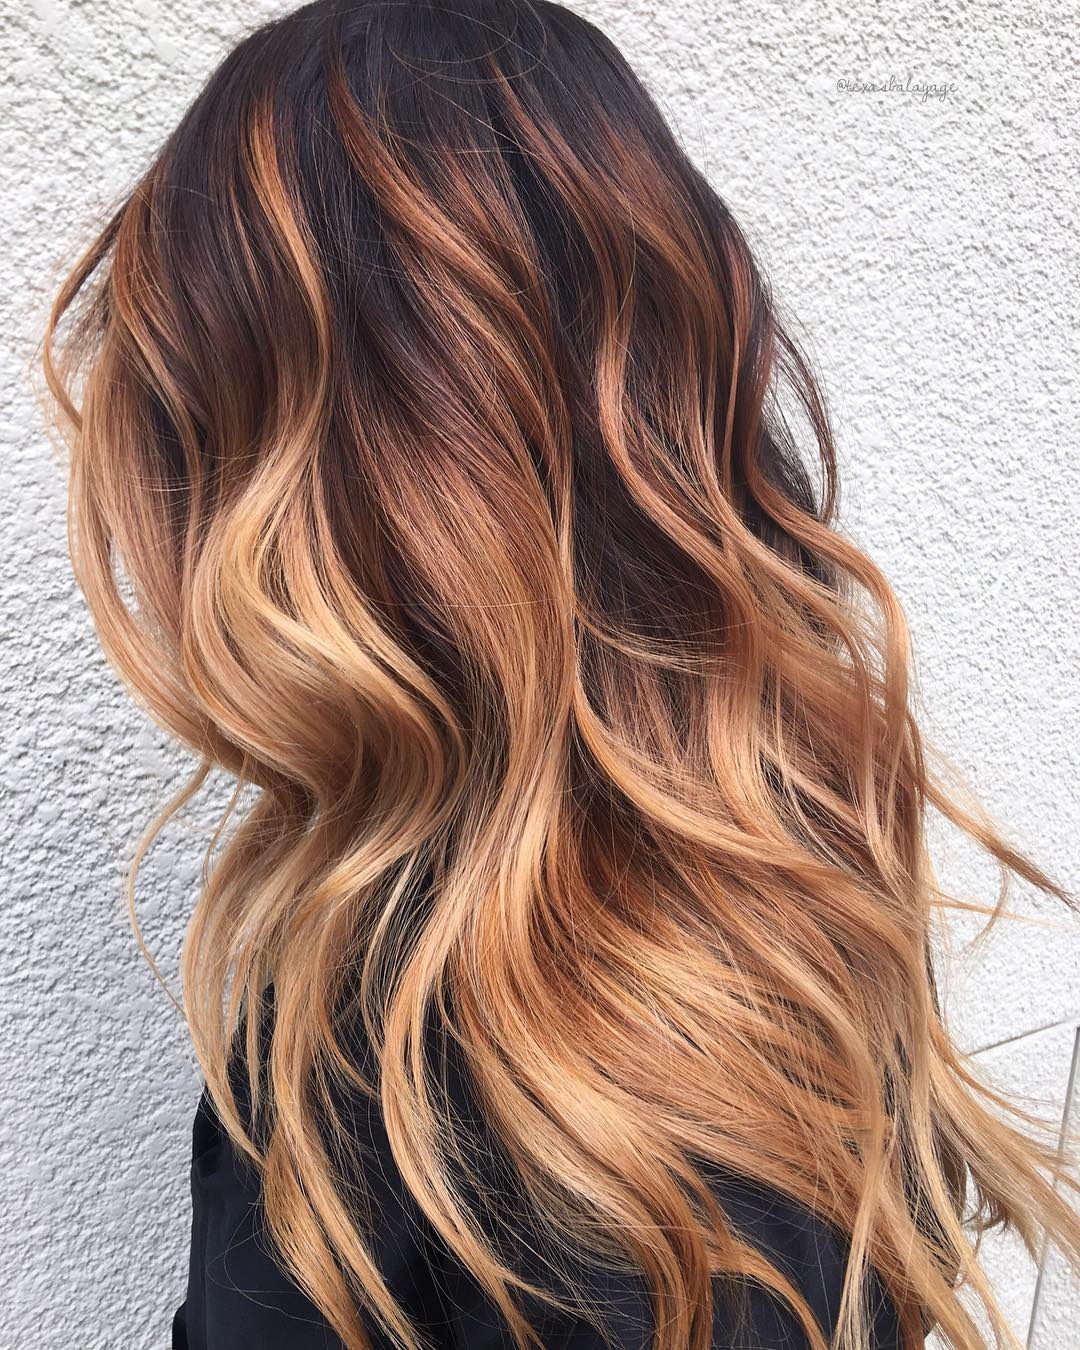 Strawberry Blonde Balayage with Dark Roots